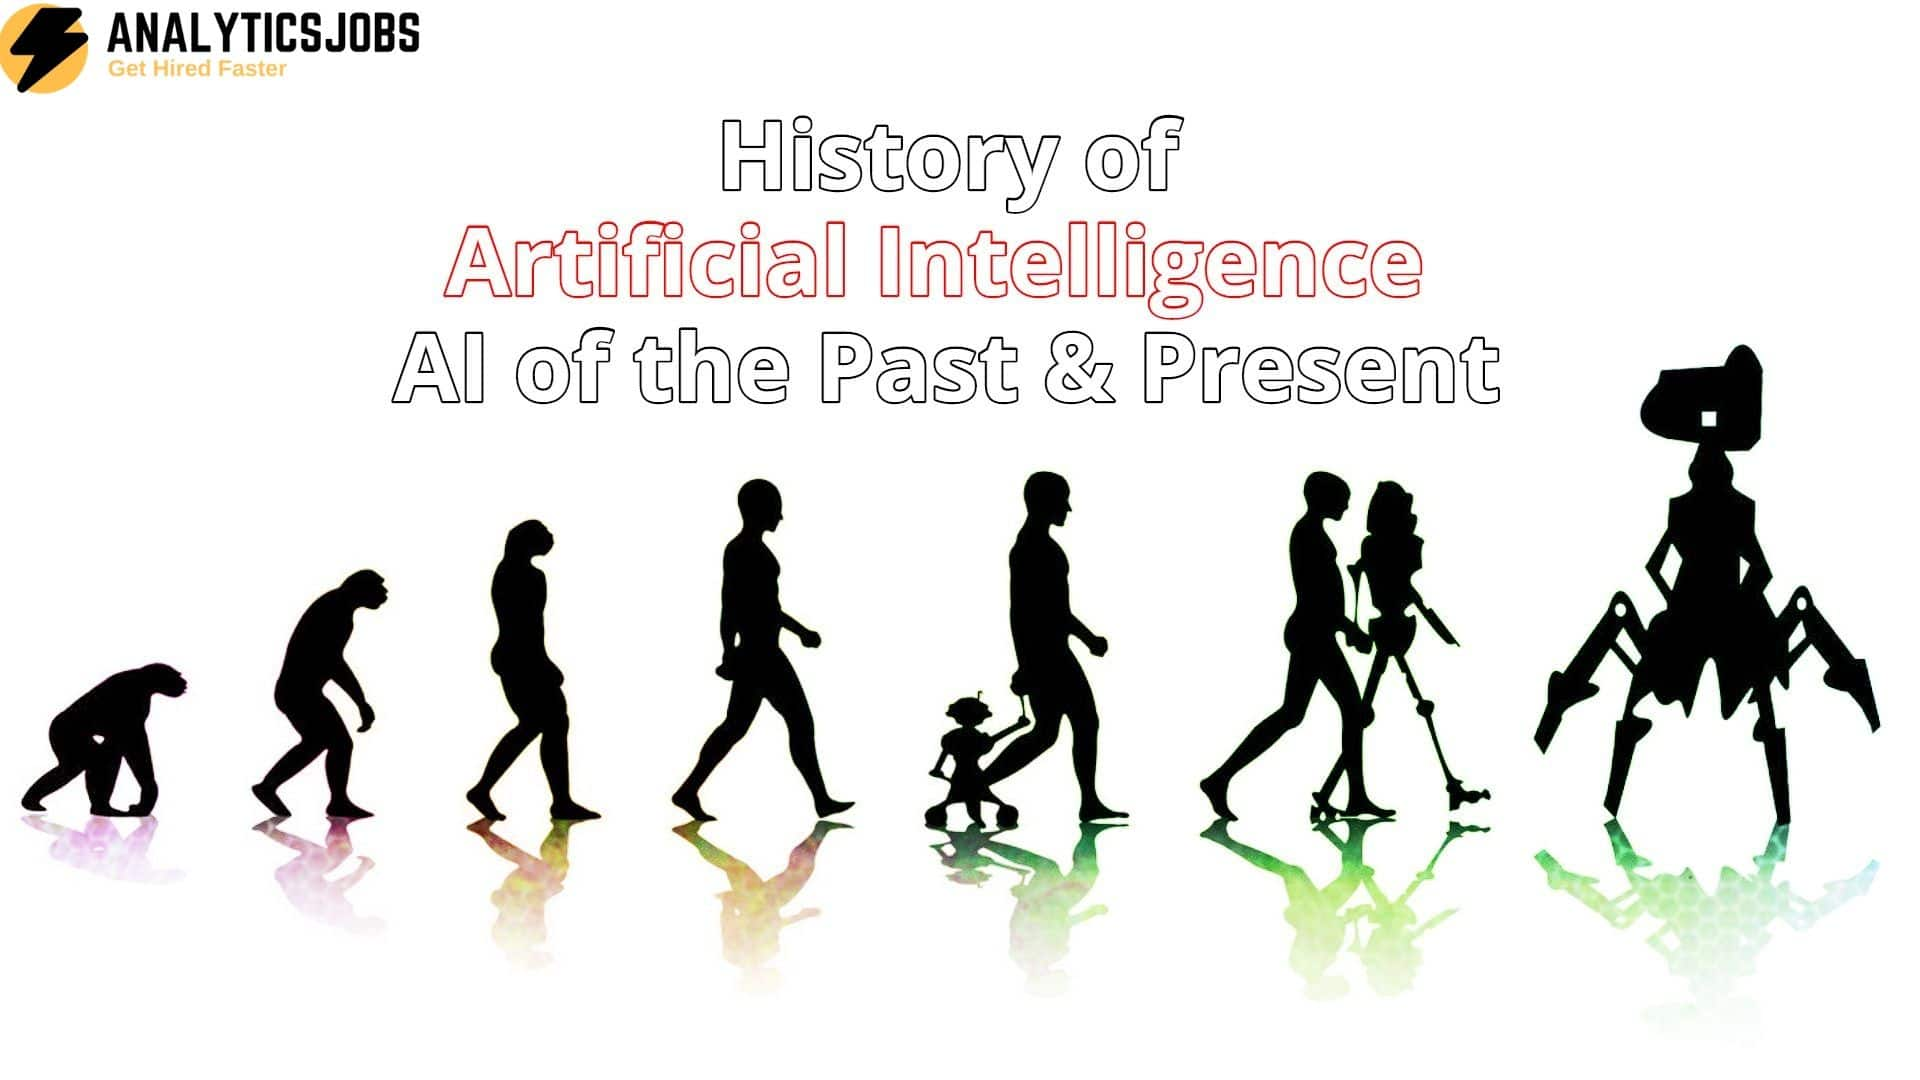 History of Artificial Intelligence - AI of the Past & Present